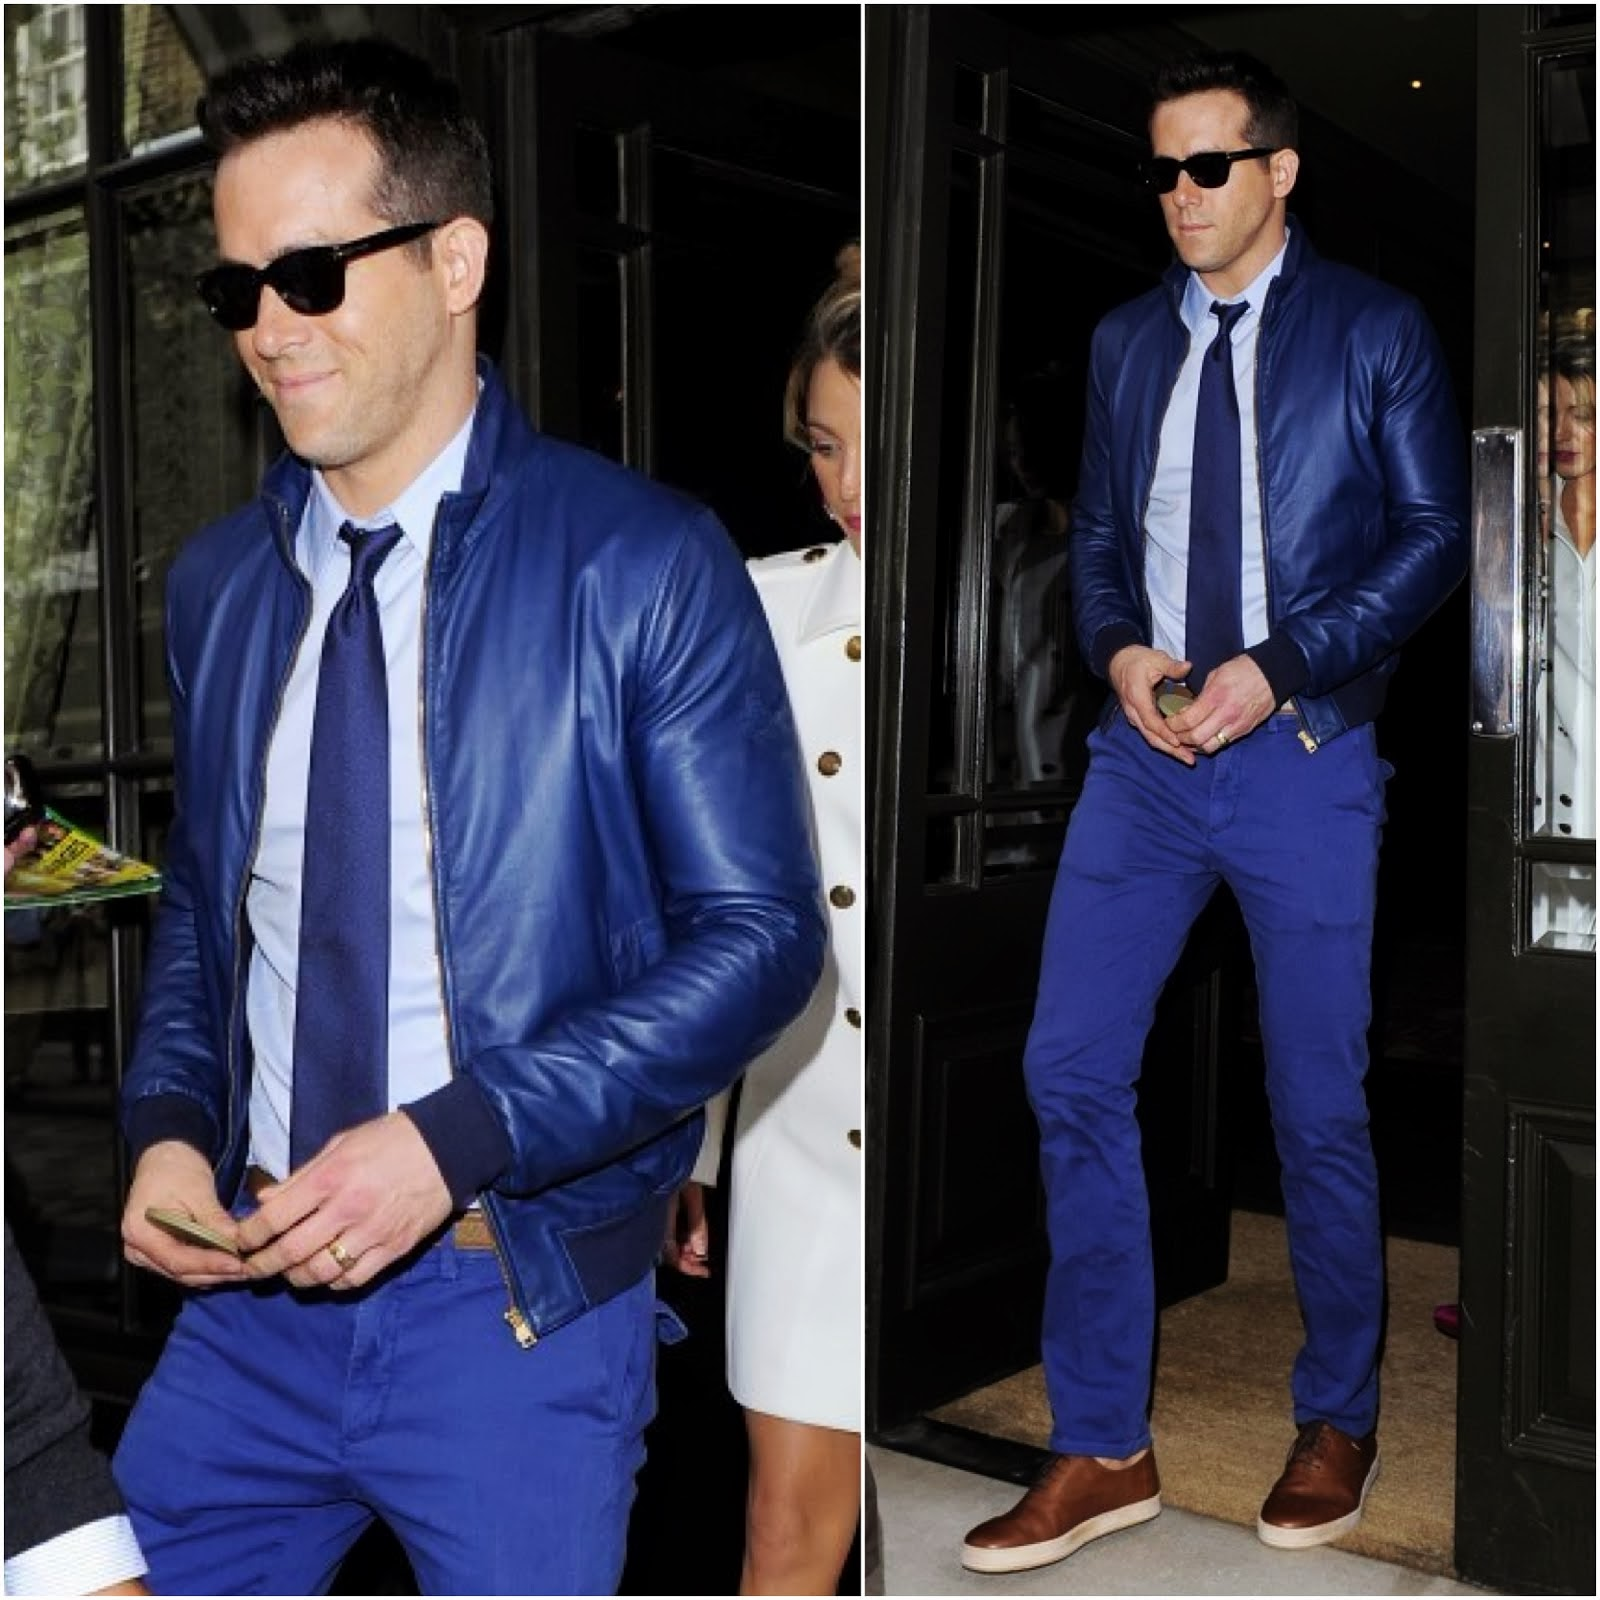 00O00 Menswear Blog: Ryan Reynolds in Gucci - London Street Style June 2013